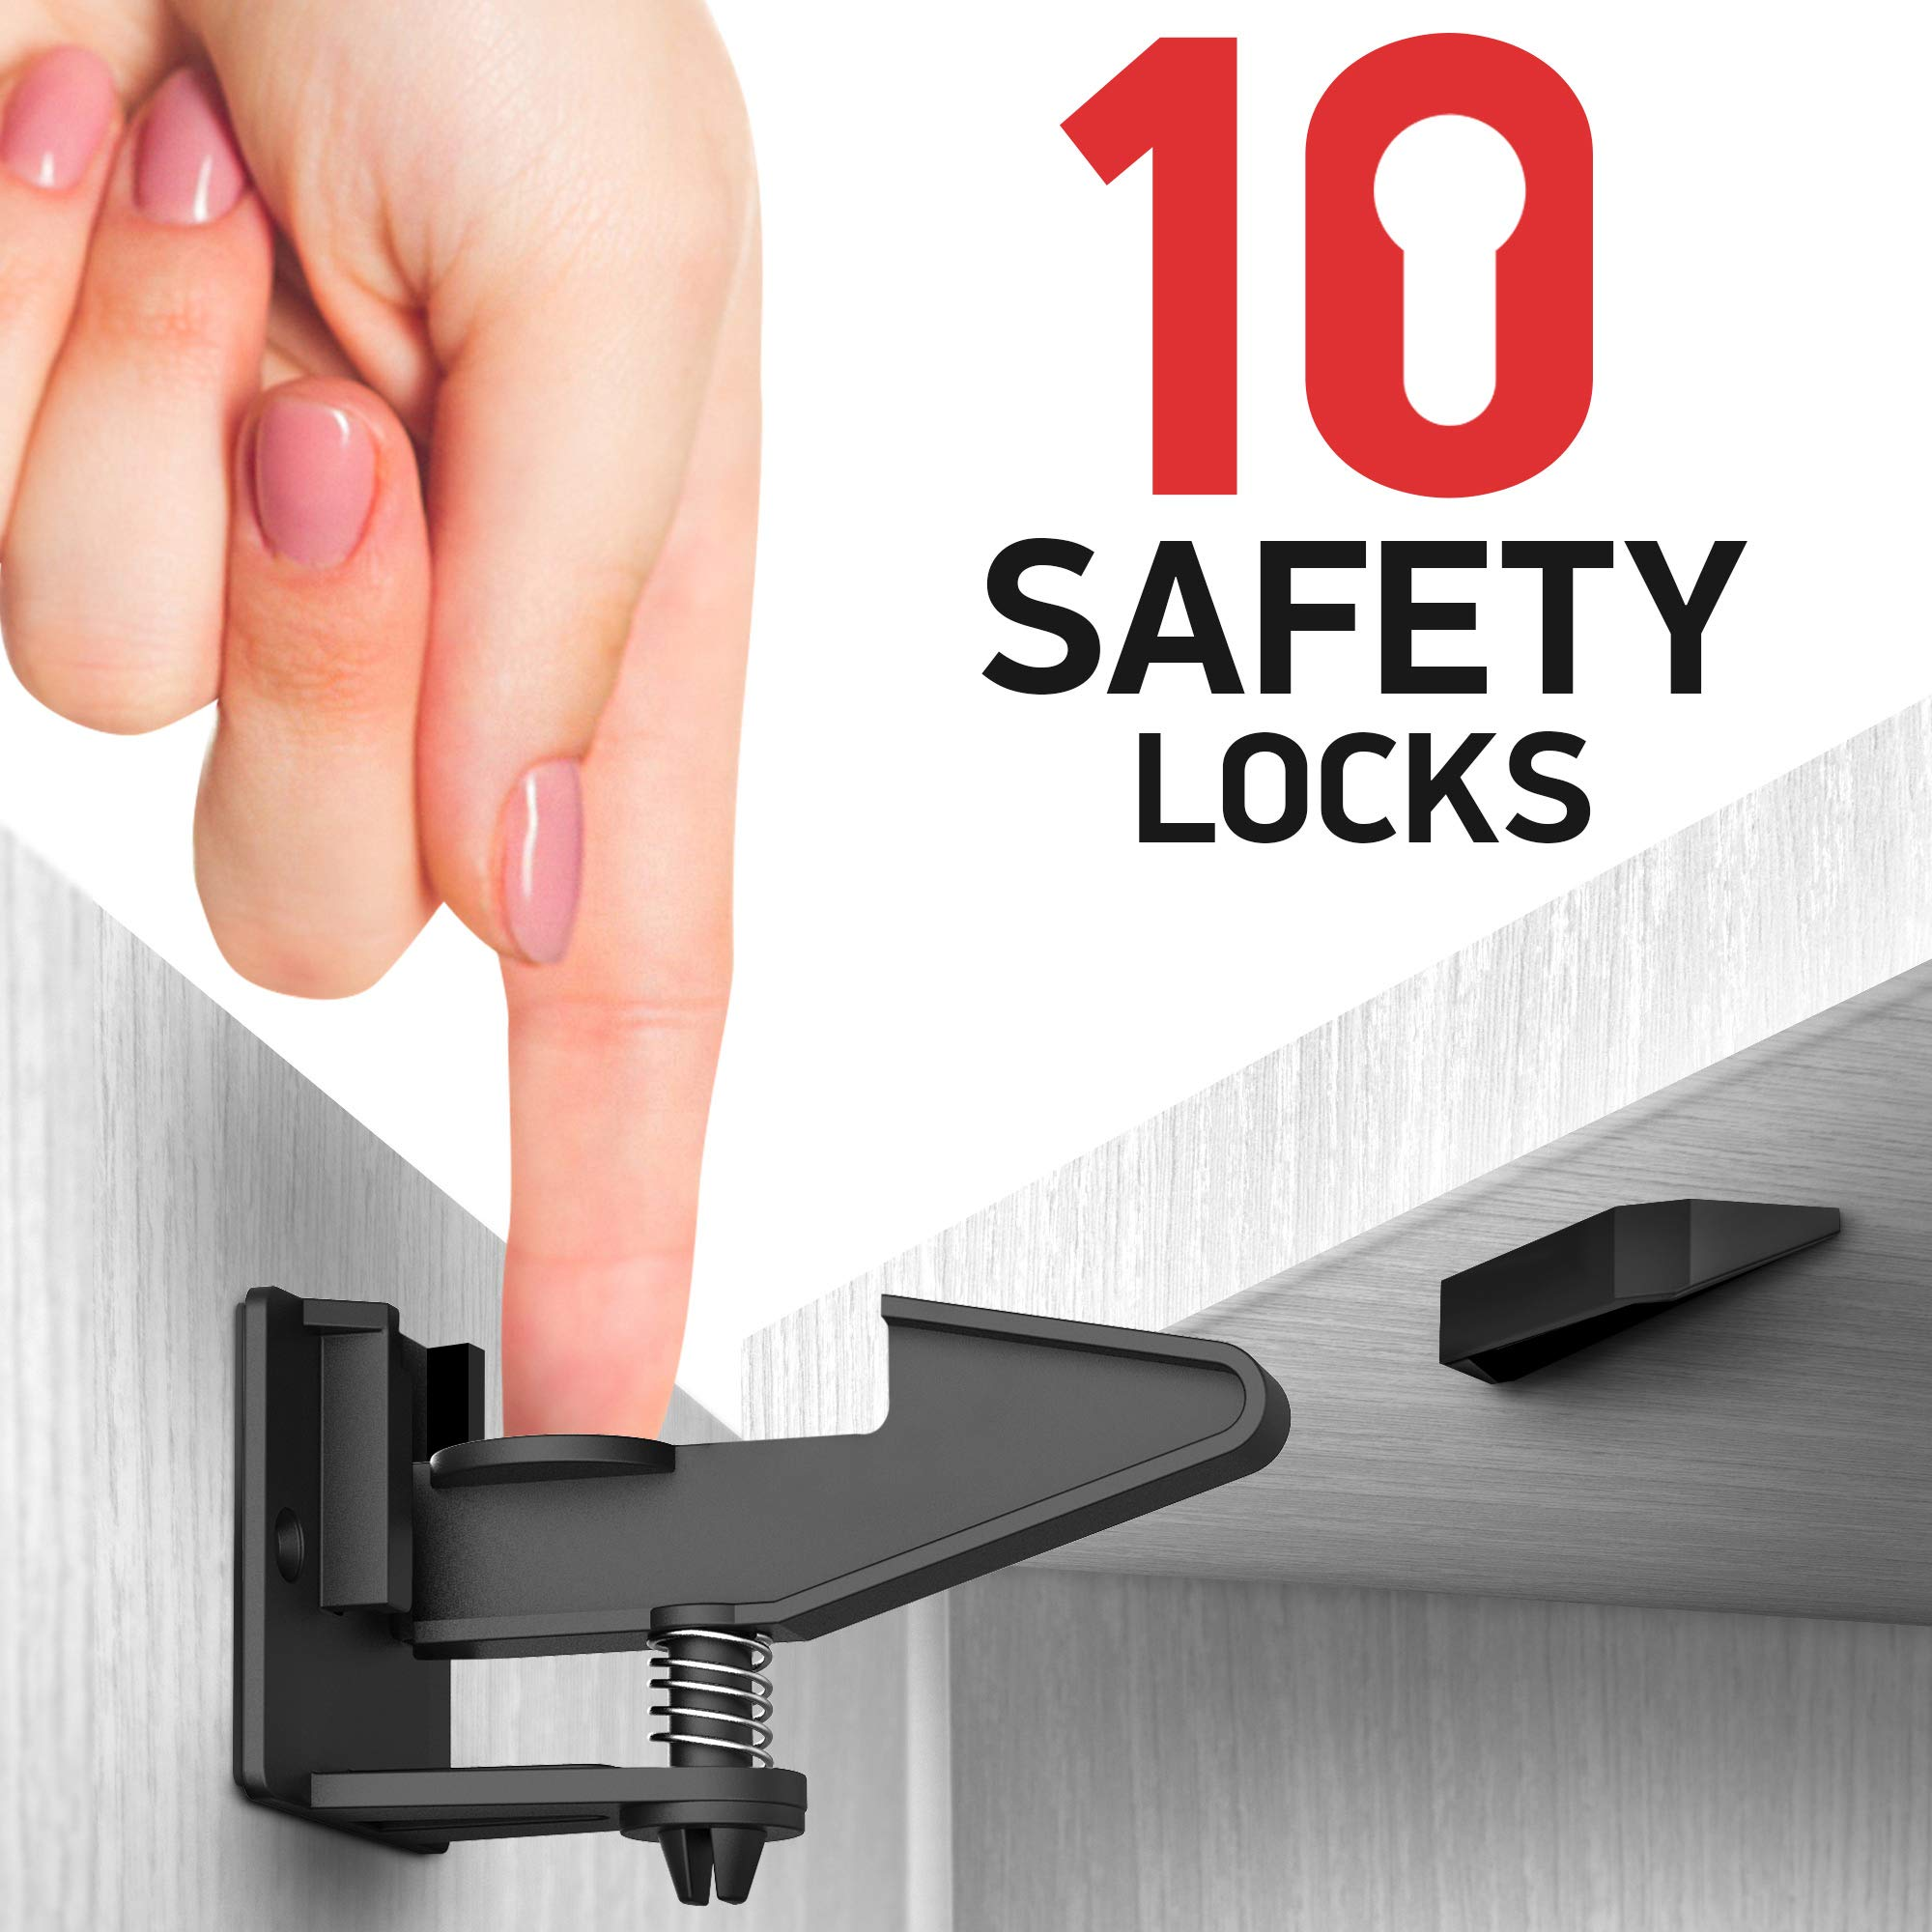 Kitchen Cabinet Locks Child Safety - 10 Pack Adhesive Child Proof Cabinet Locks - Baby Safety Cabinet Locks - Quick and Easy Child Locks for Cabinets and Drawers - Corner & Door Guards, Socket Covers by Daily Best